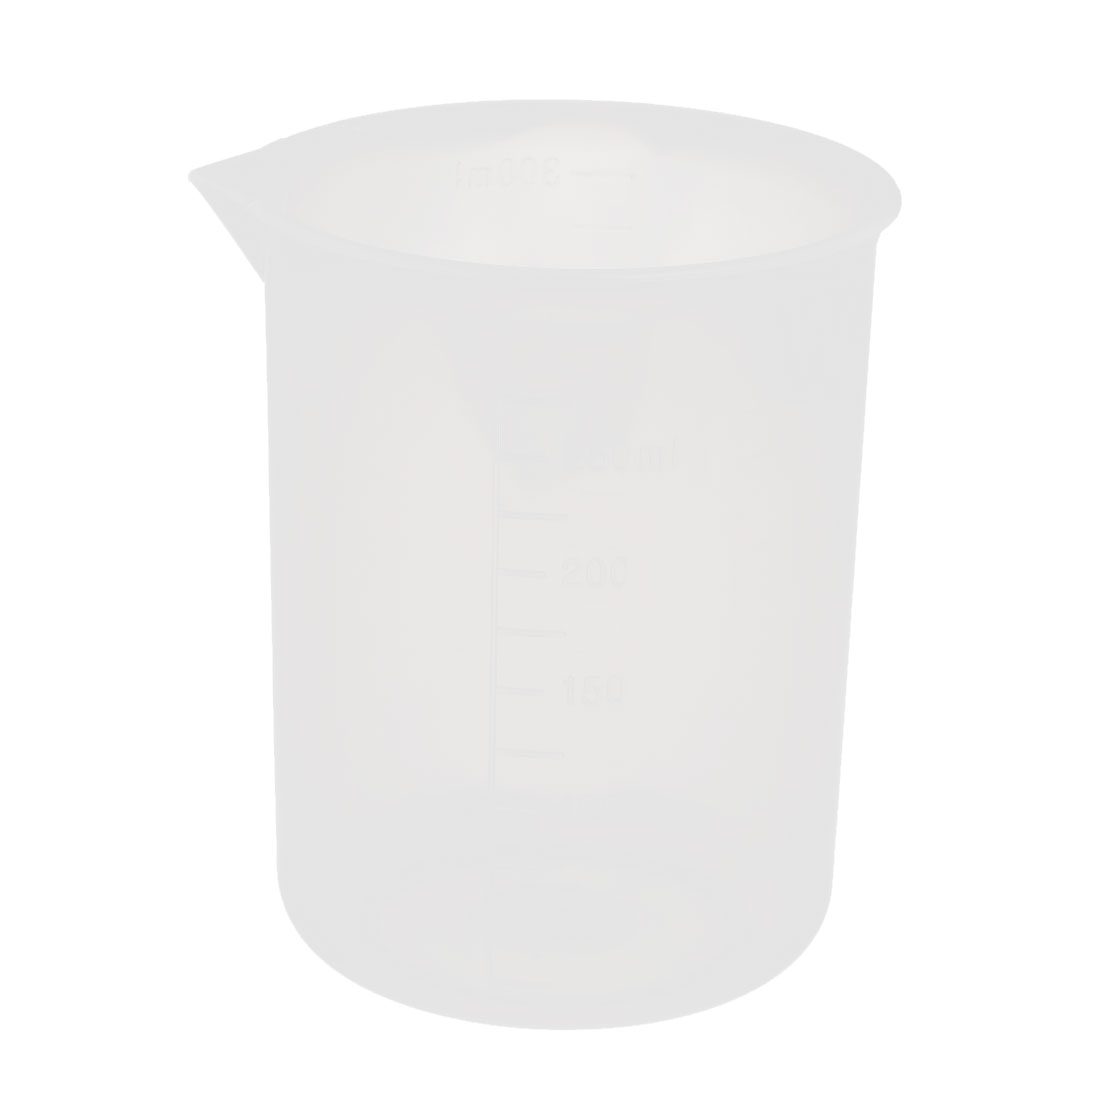 250mL Laboratory Plastic Liquid Container Measuring Cup Beaker Clear